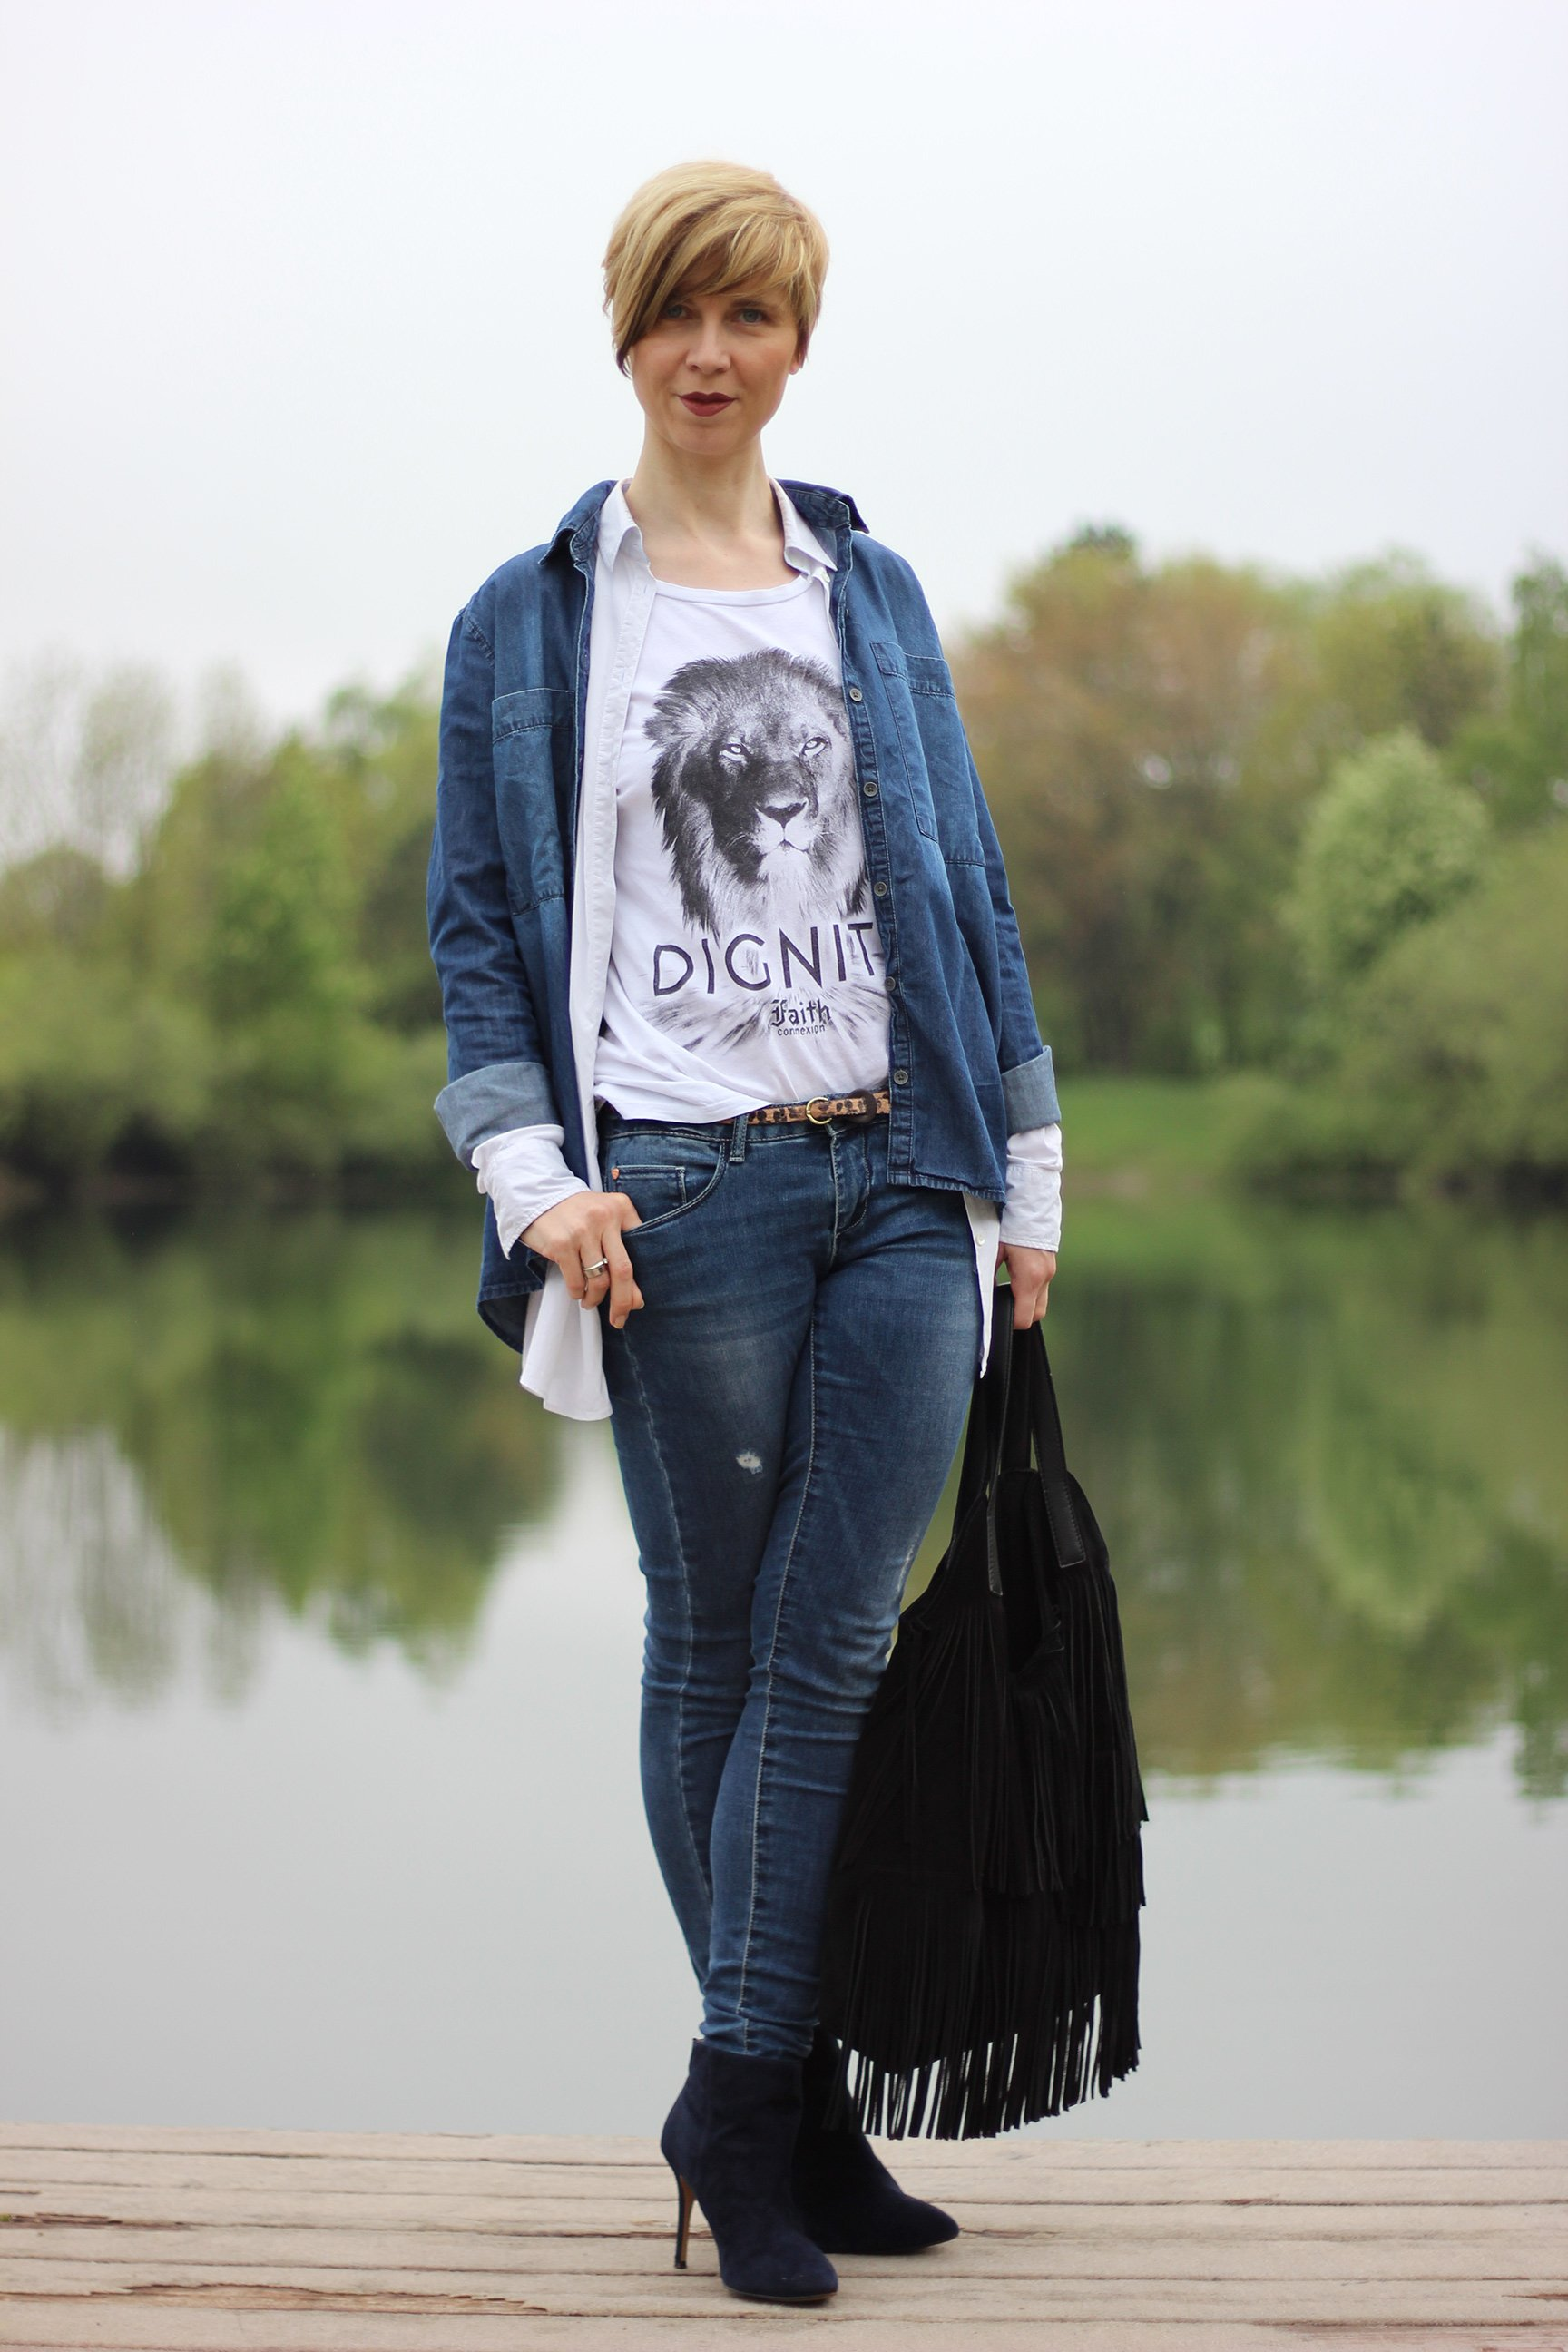 IMG_3893a_Jeansallover_weisseBluse_Jeanshose_Jeanshemd_Stiefeletten_Ahemadundahos_Conny_Printshirt_FaithConnexion